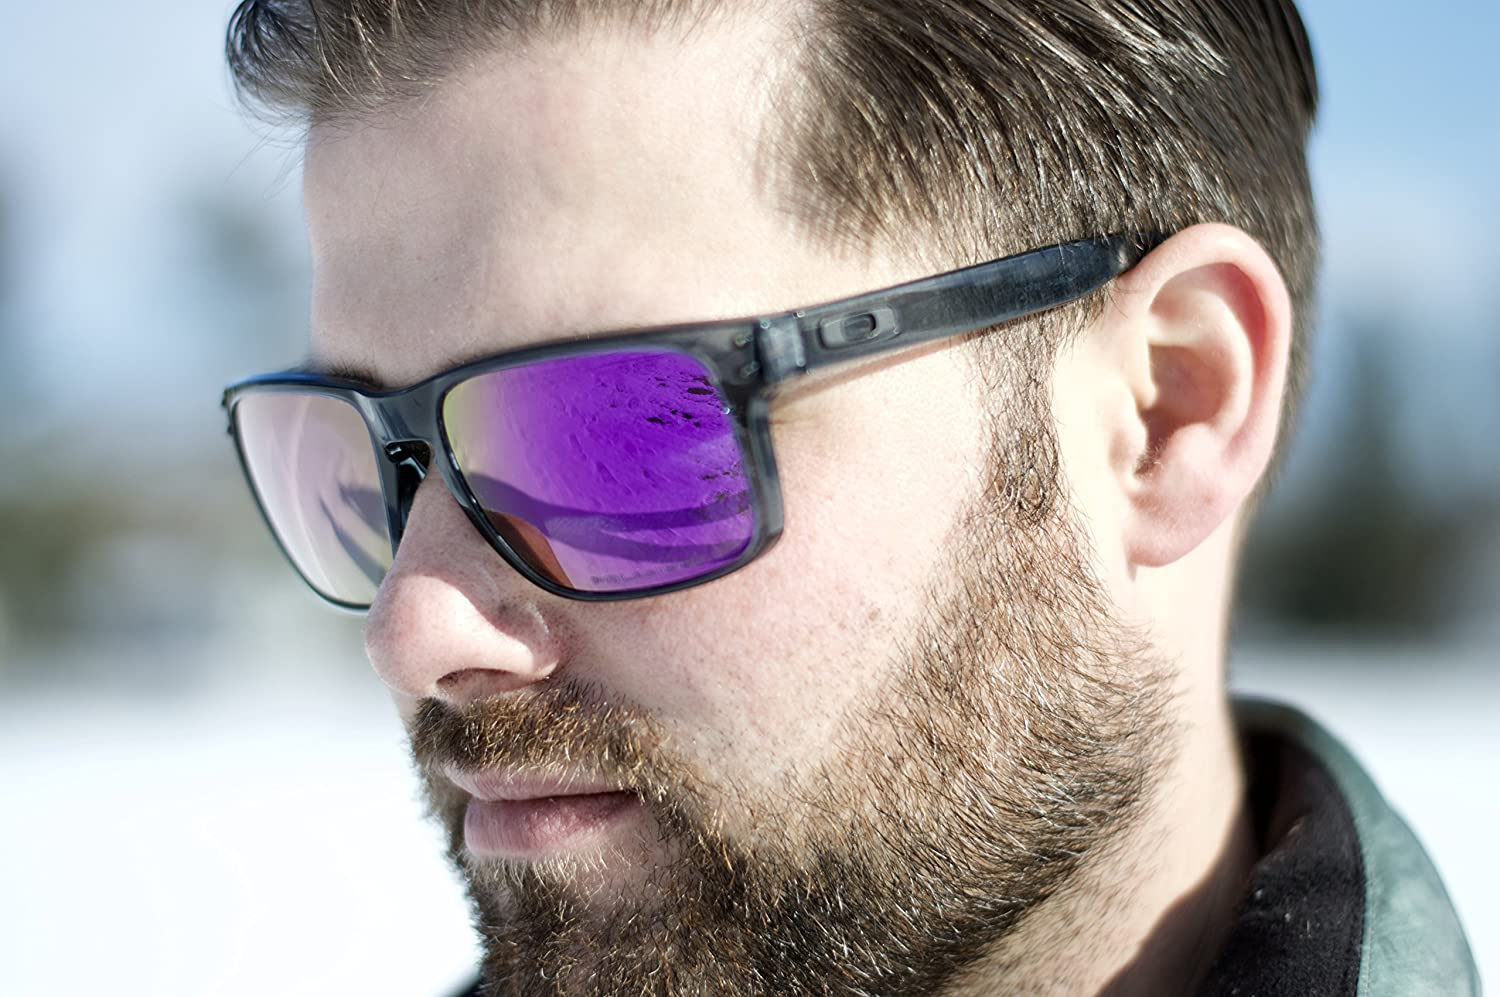 c60665f3e PURPLE Oakley Holbrook Lenses POLARIZED by Lens Swap. GREAT QUALITY & FITS  PERFECTLY. Oakley larger image